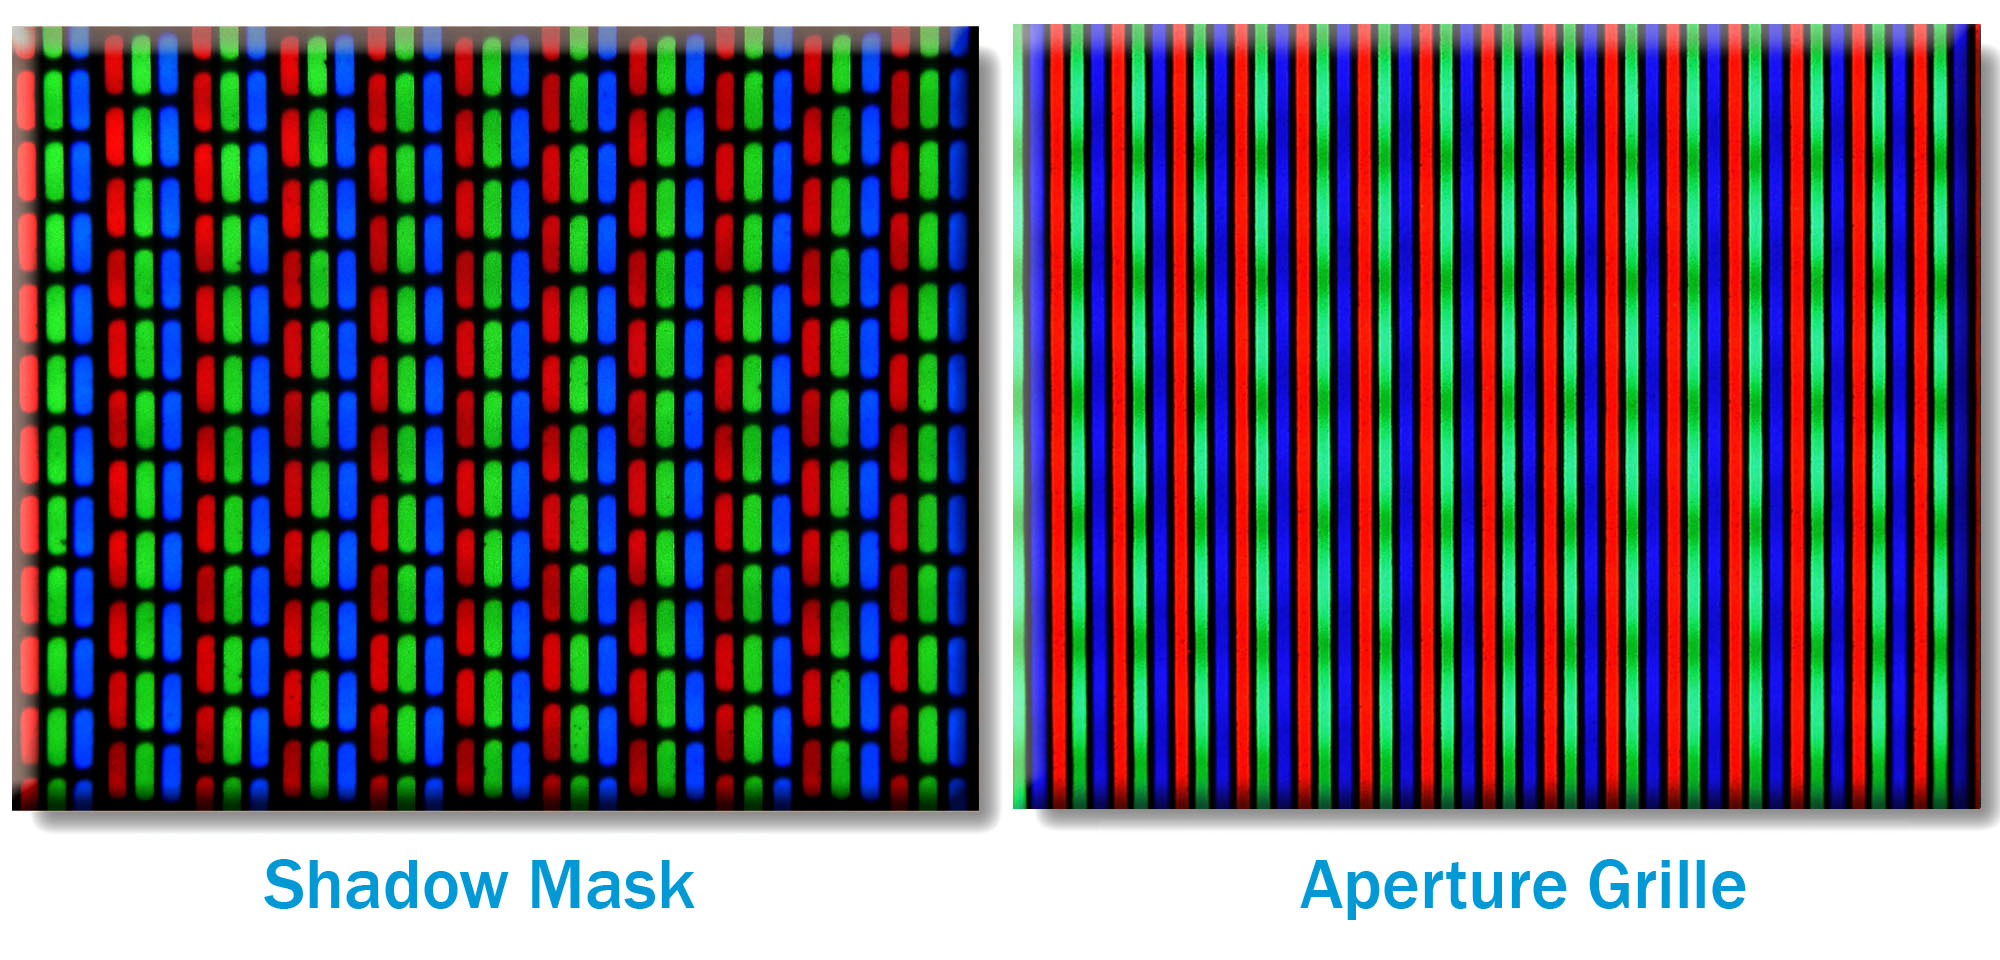 Super Nintendo Classic Edition - Page 5 Shadow_mask_vs_aperture_grille